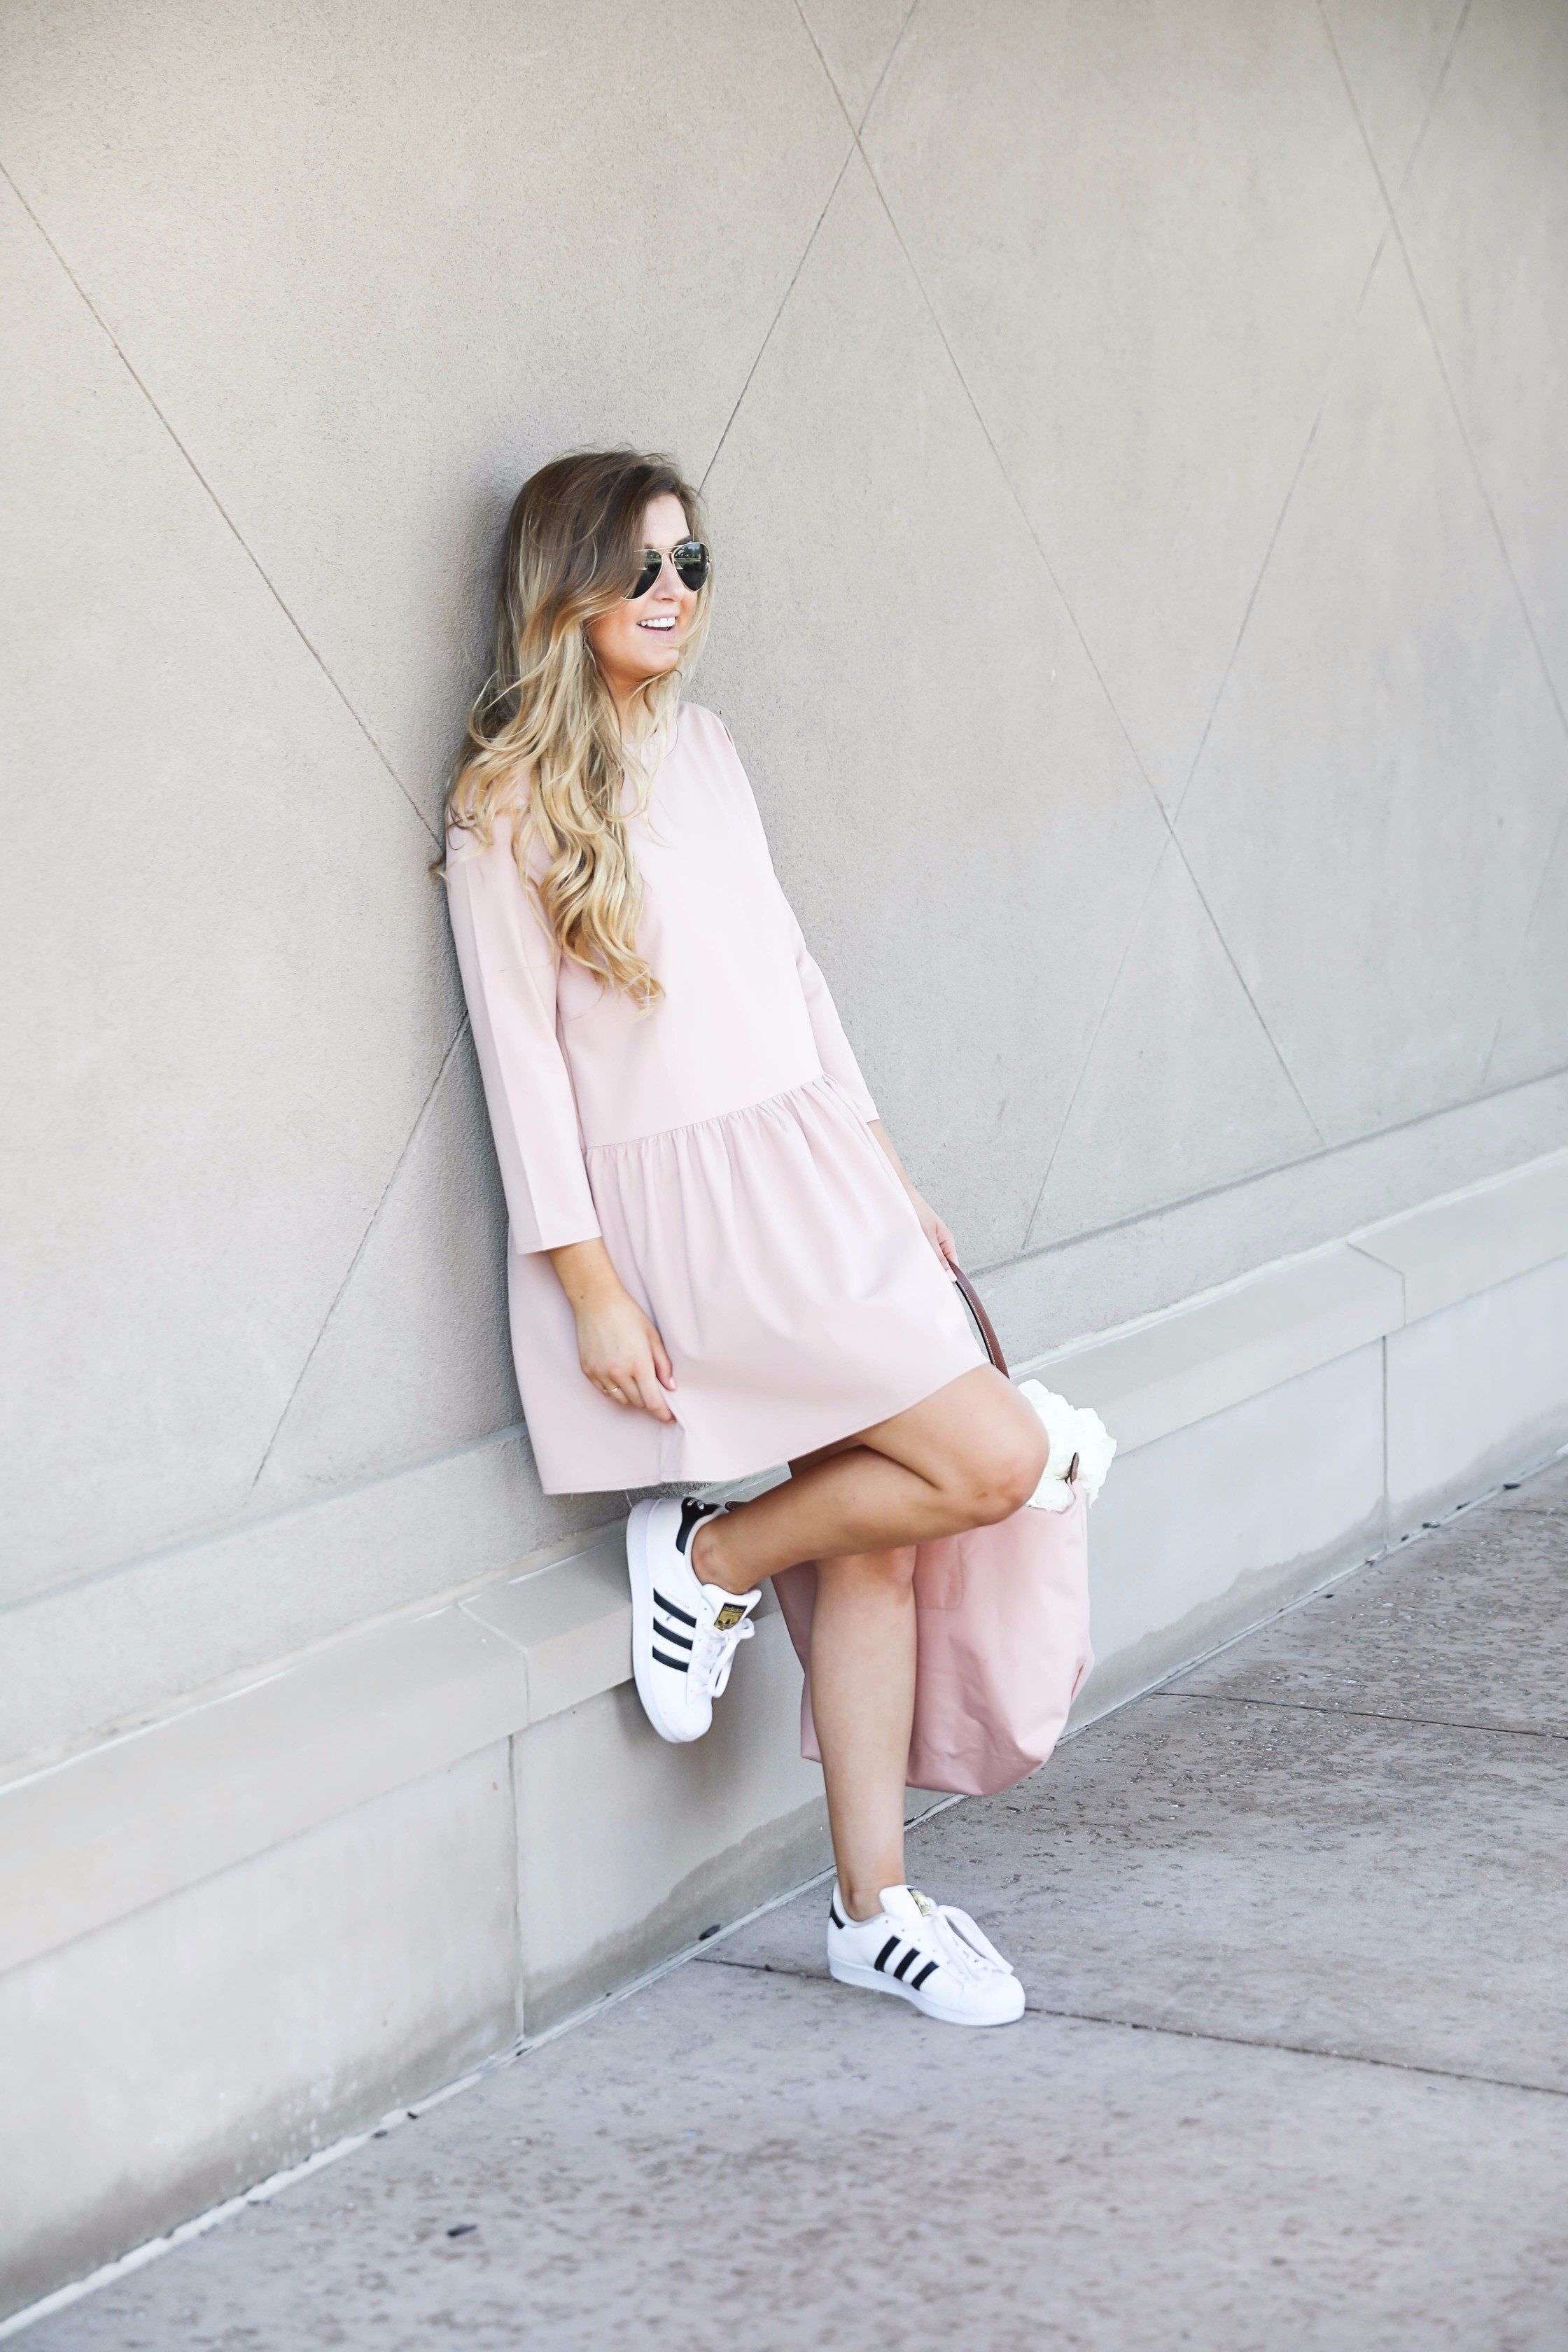 Pink drop waist dress with Adidas sneakers! Such a cute and casual look. I paired it with my favorite light pink longchamp with hydrangeas! By fashion blog daily dose of charm lauren lindmark